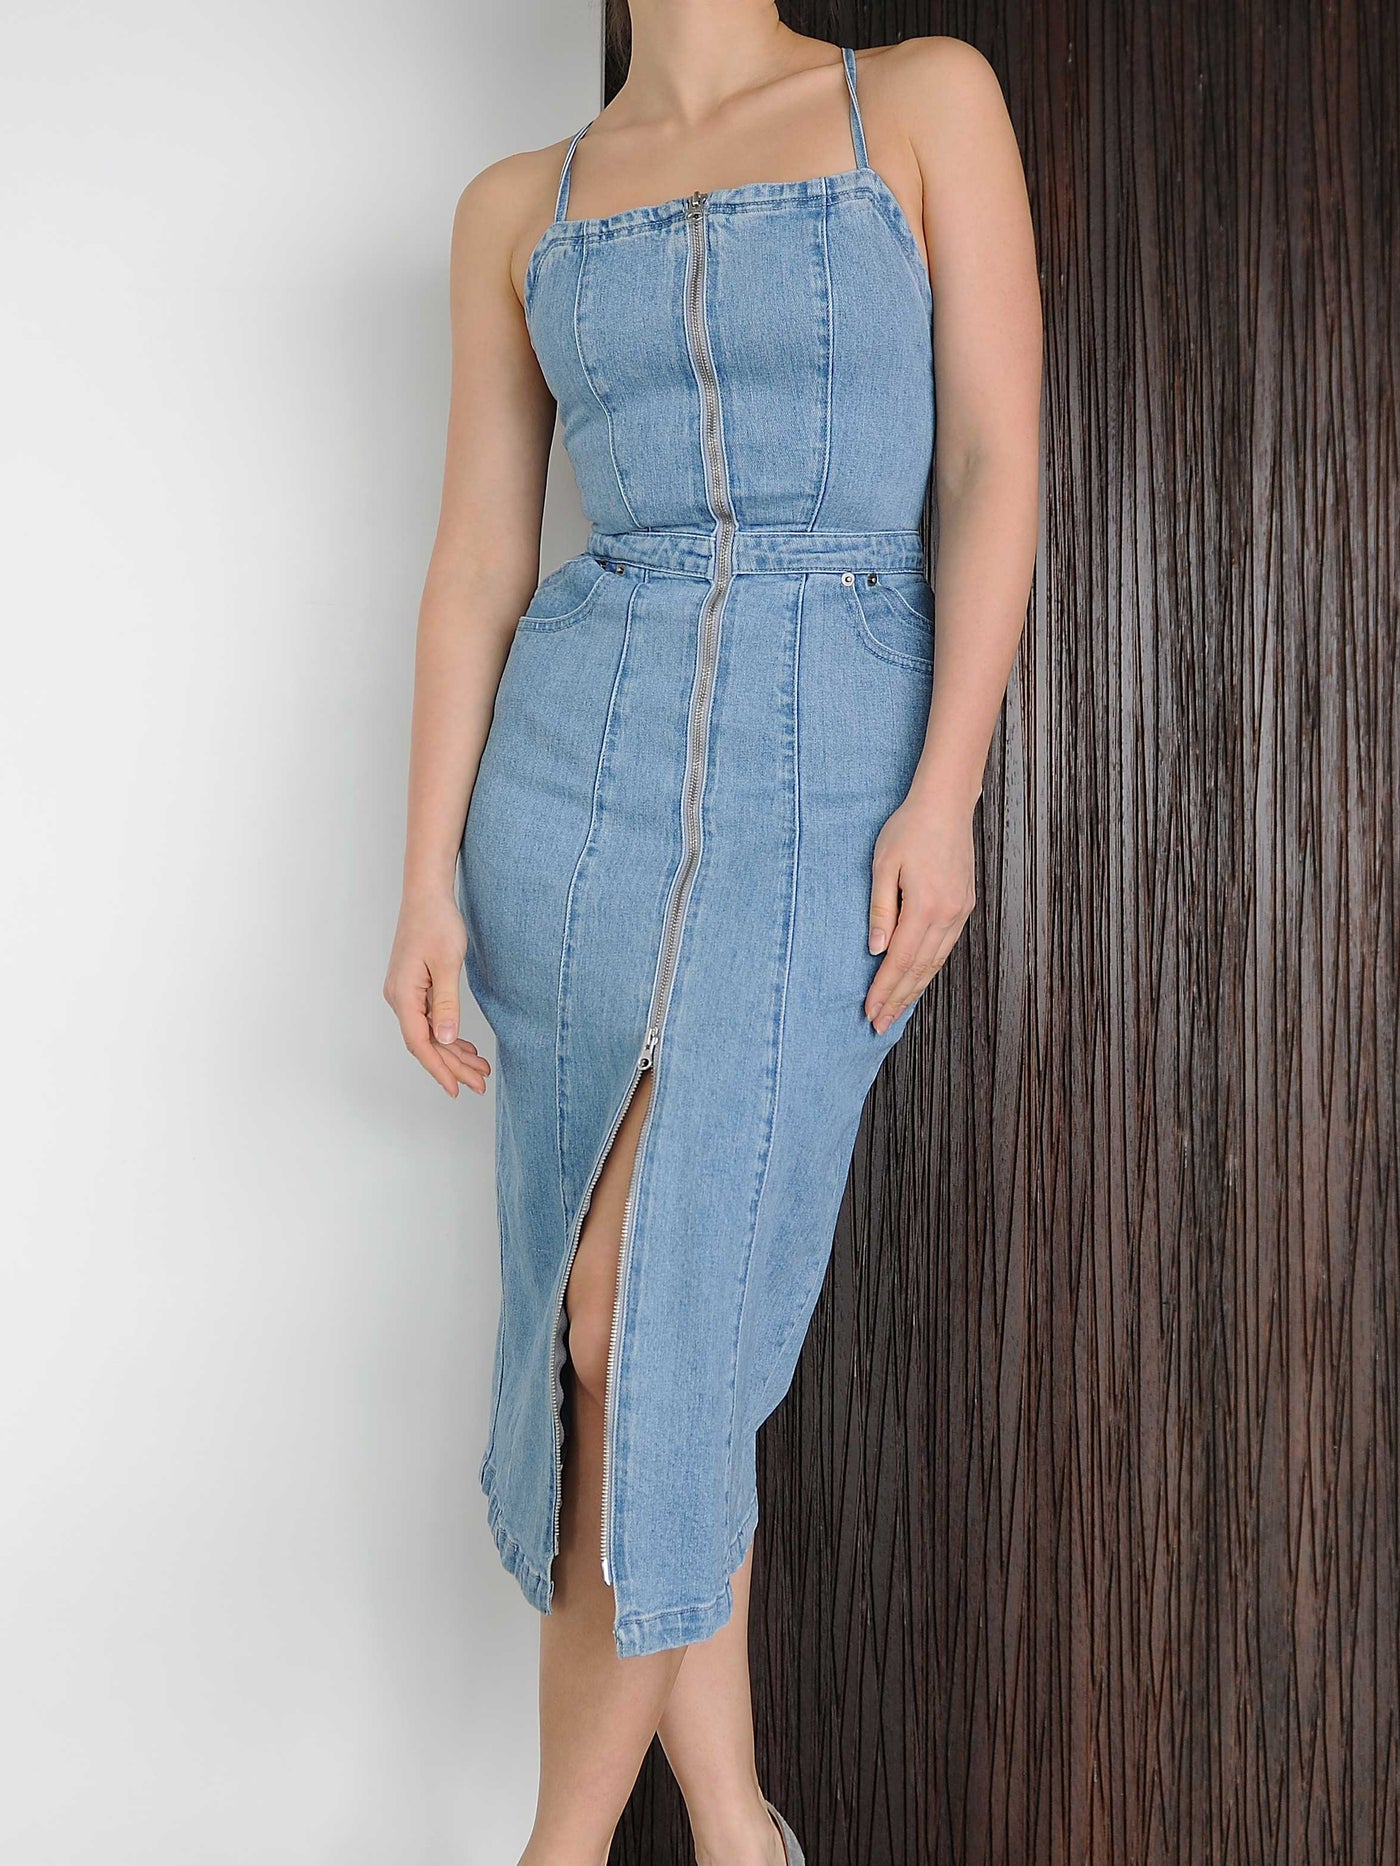 Front Zip Stevie Overall Denim Dress - Marble Hive